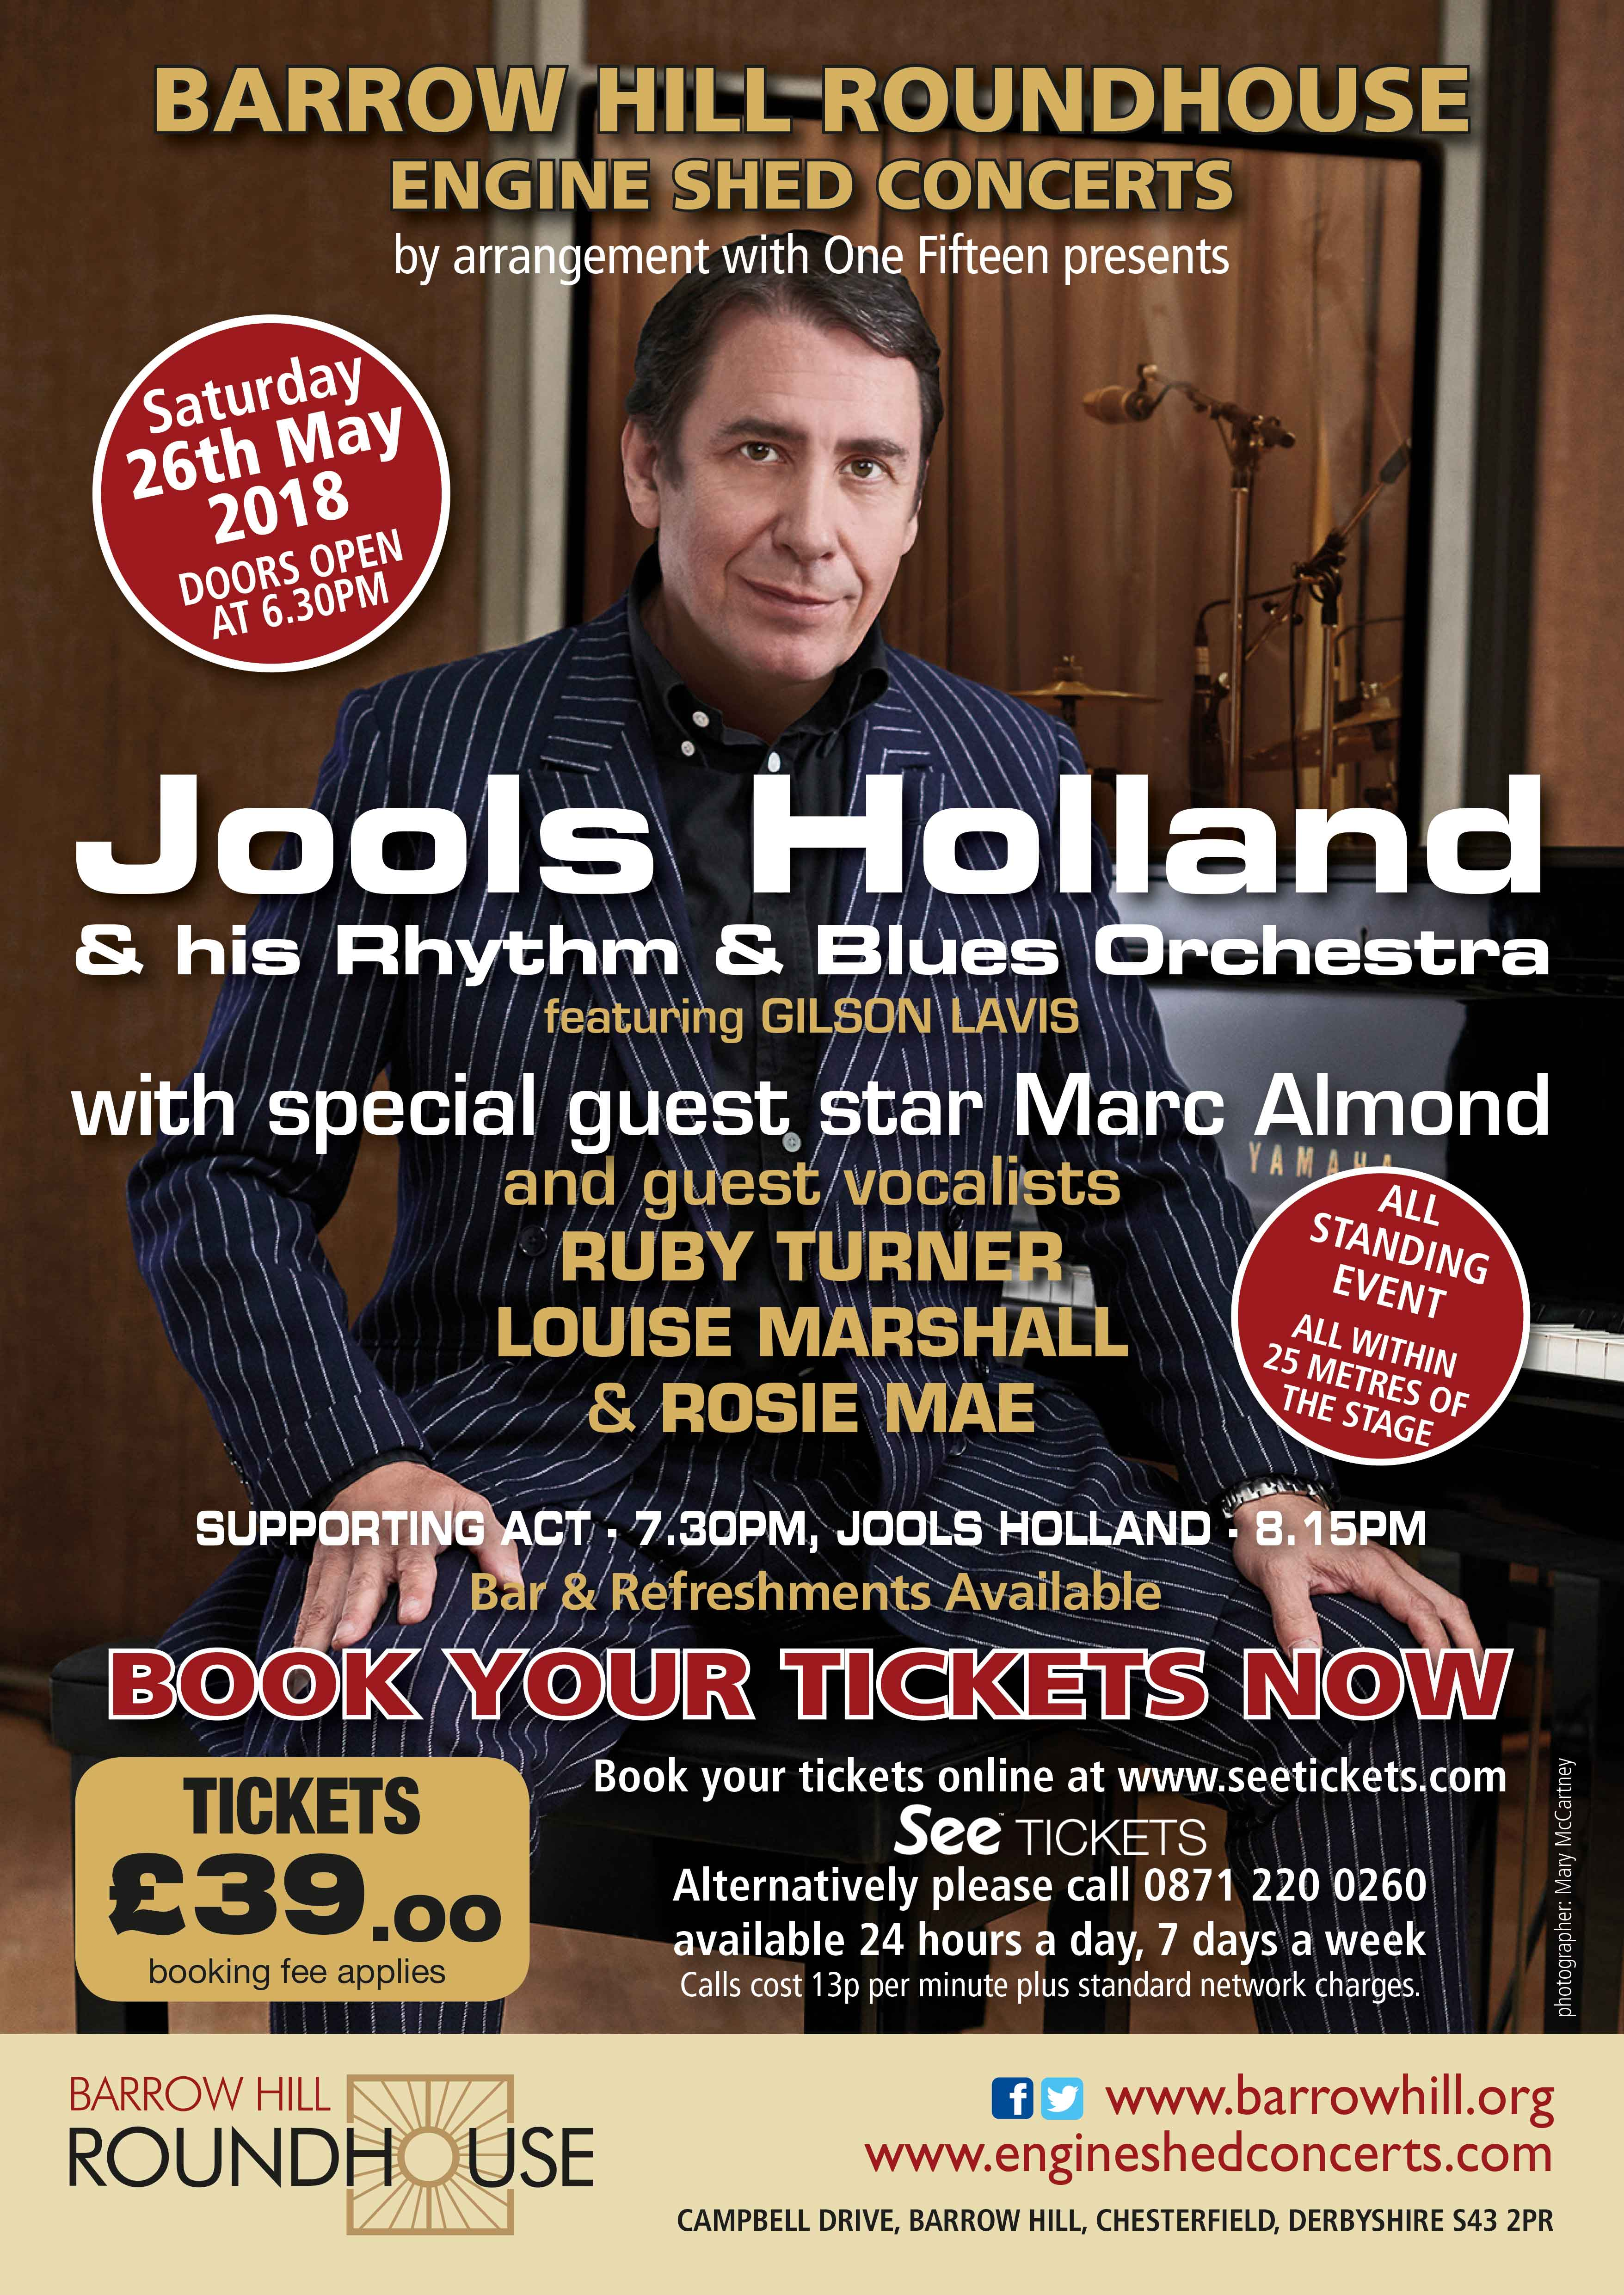 Jools Holland at barrow Hill Roundhouse, Chesterfield